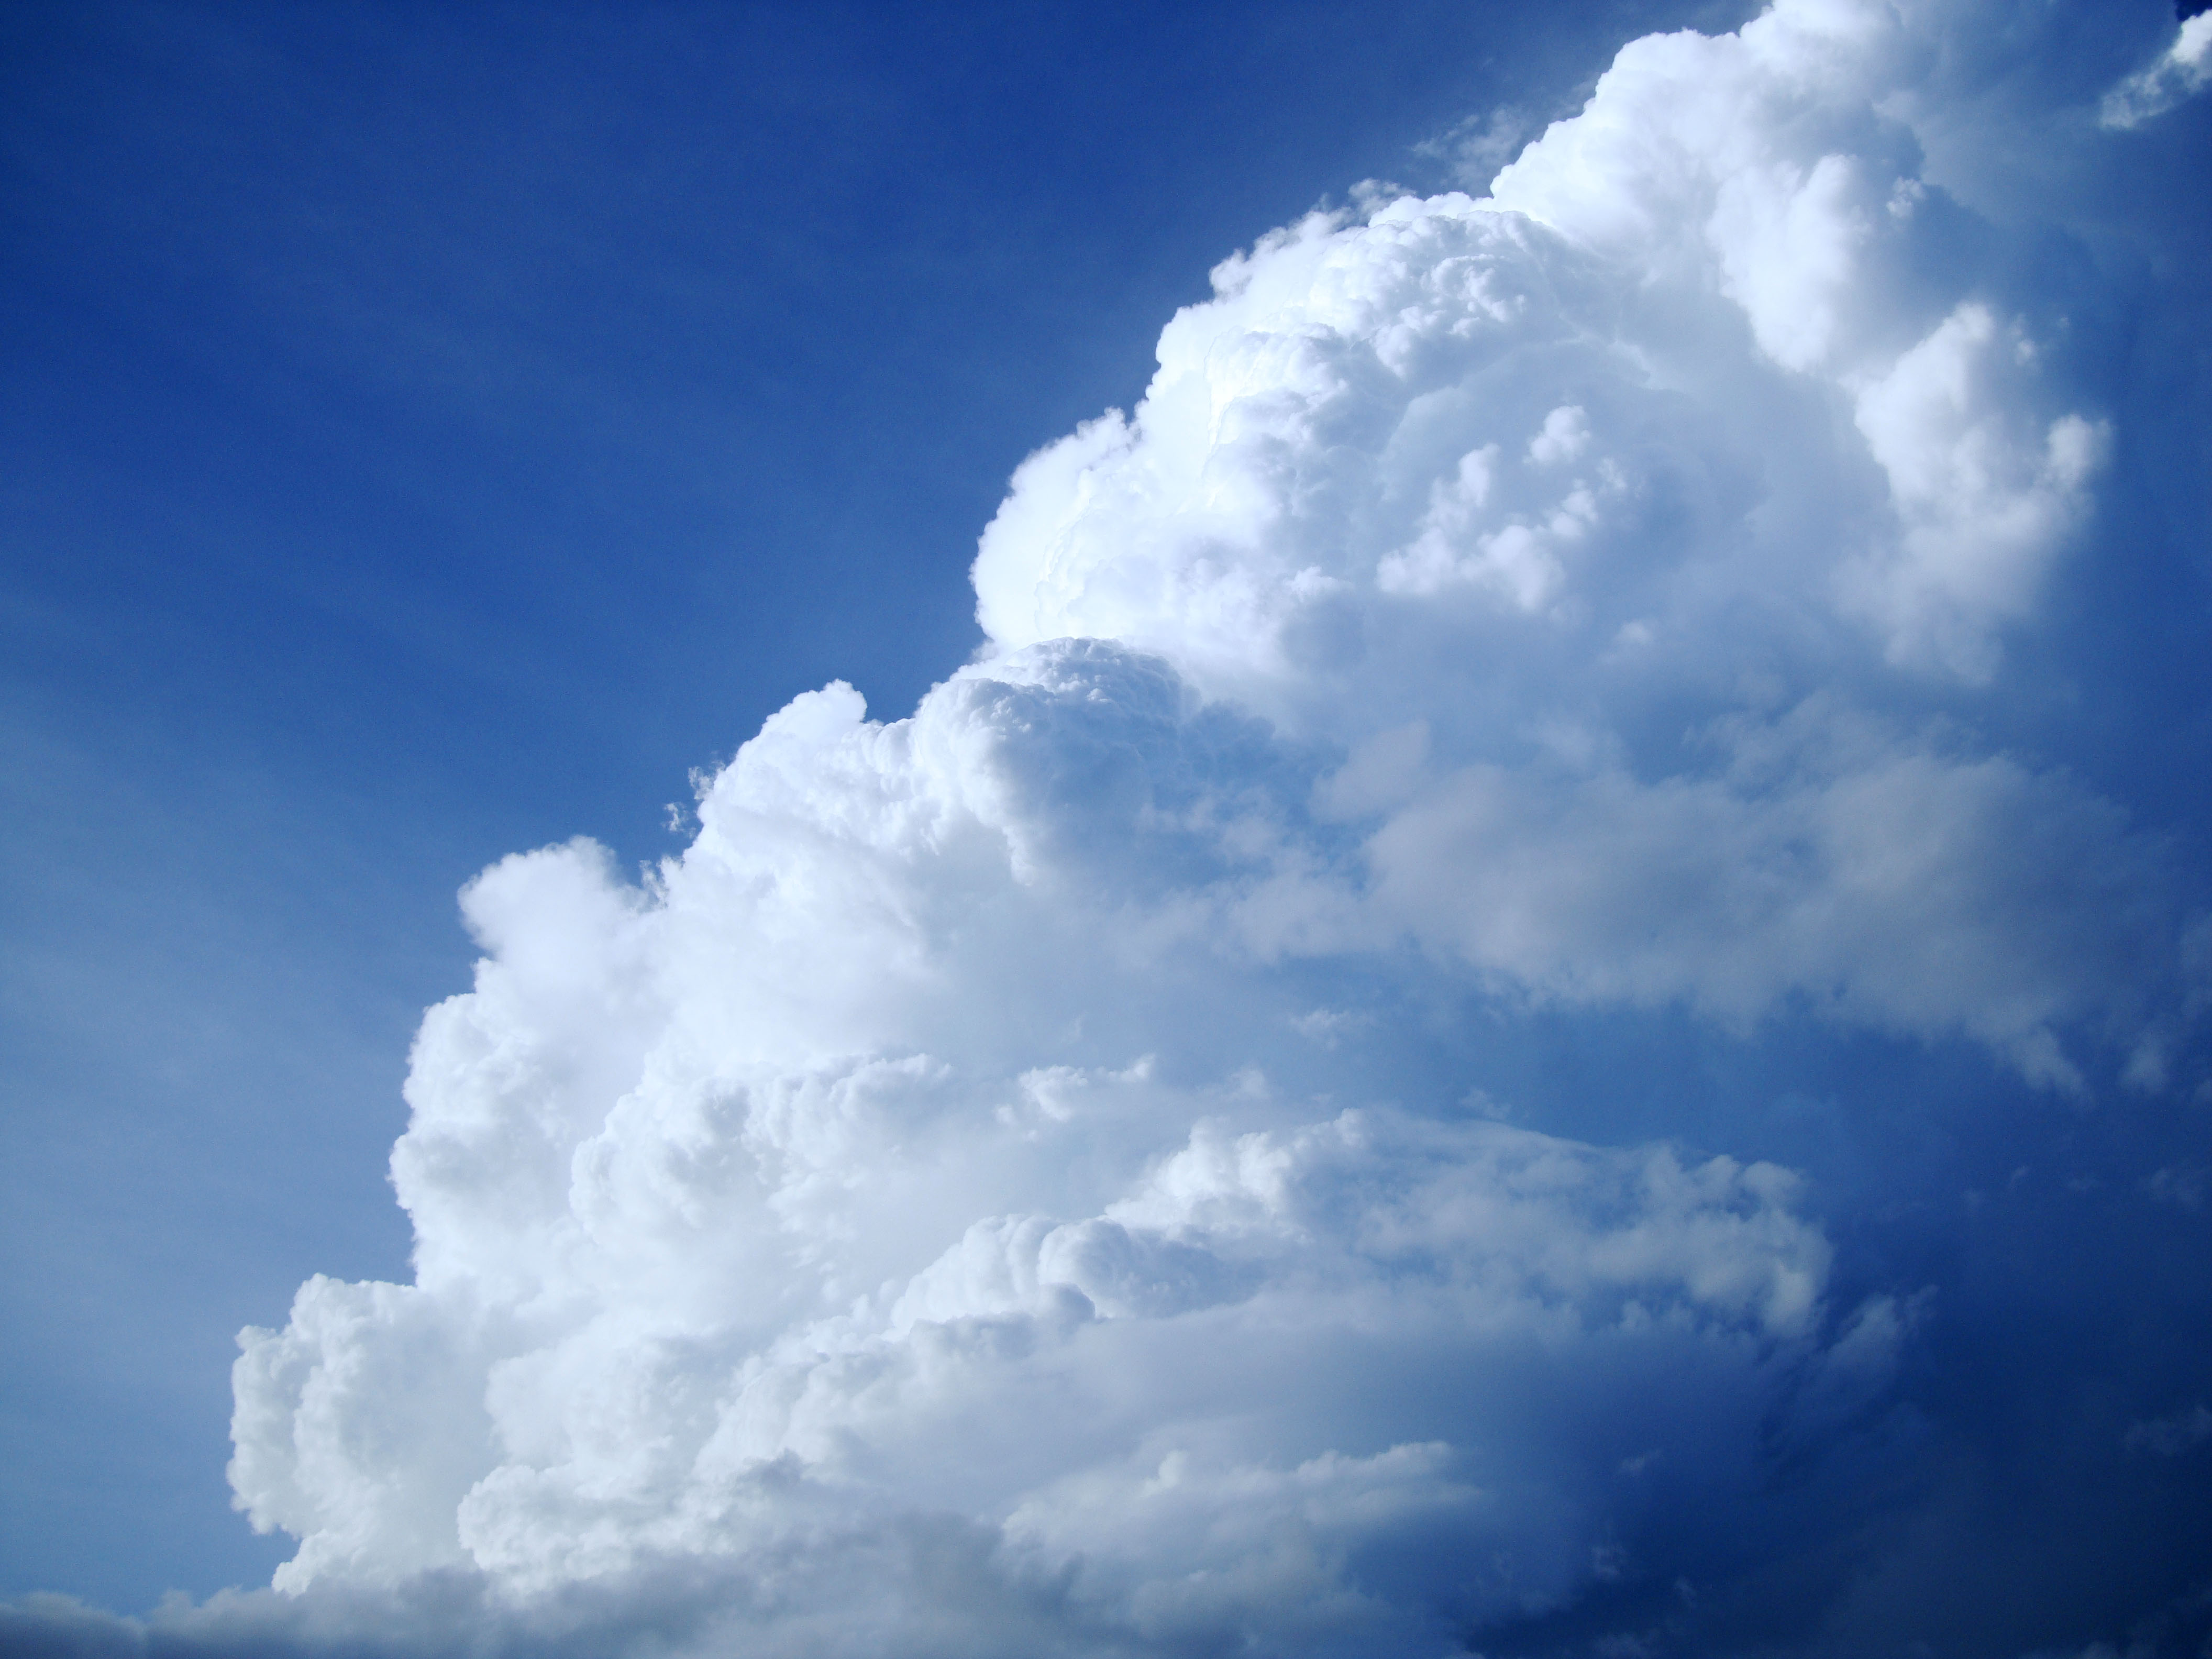 Cumulonimbus Clouds Formations Sky Storms Weather Phenomena 09